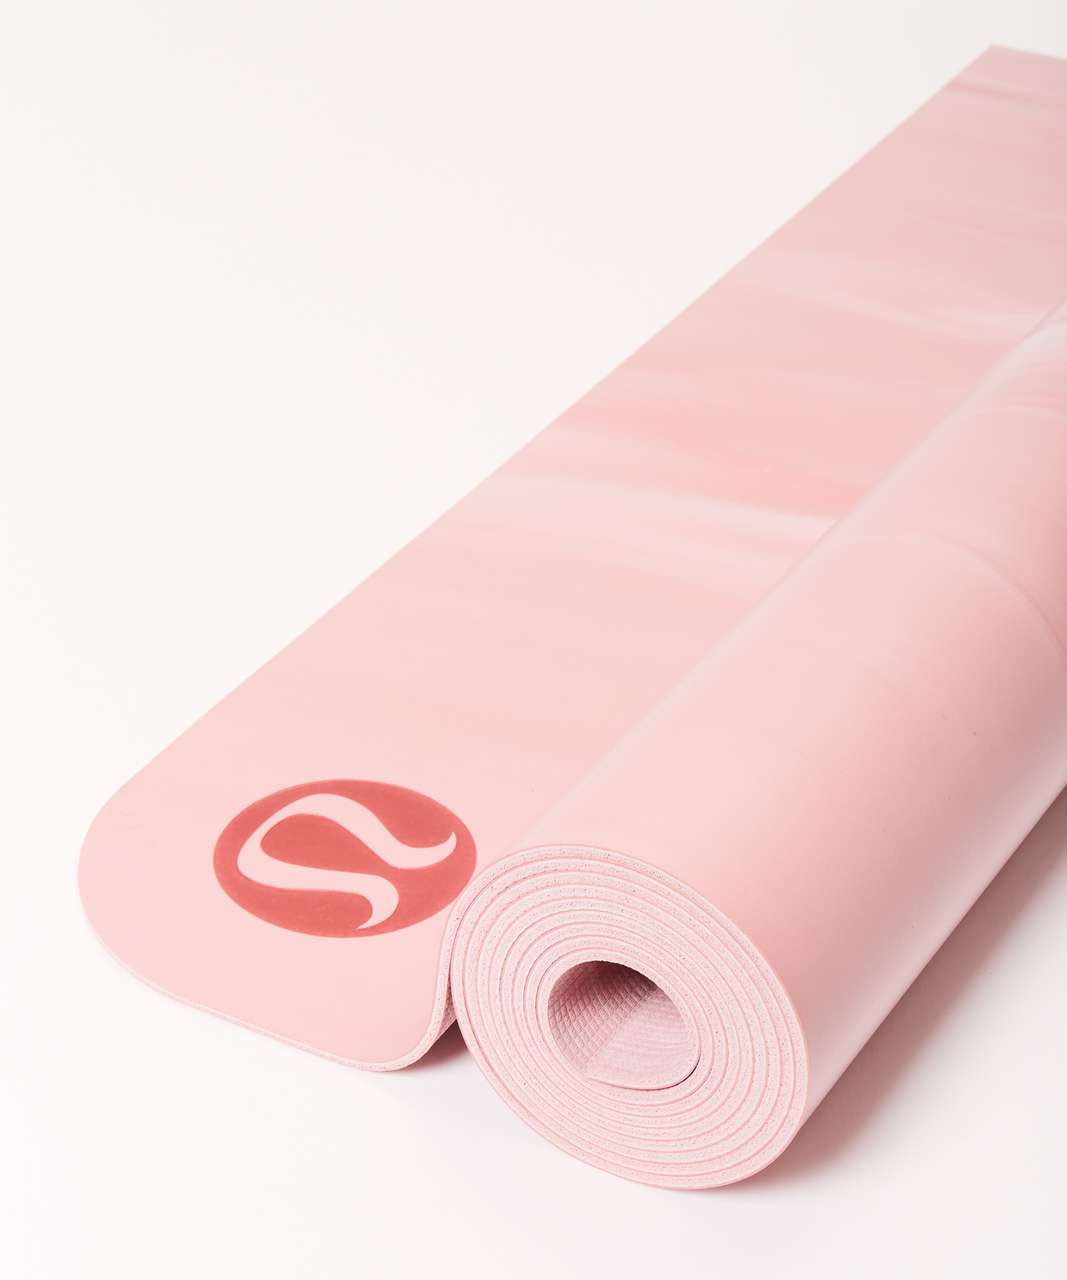 Lululemon The Reversible Mat 3mm - Petals / Cherry Dust